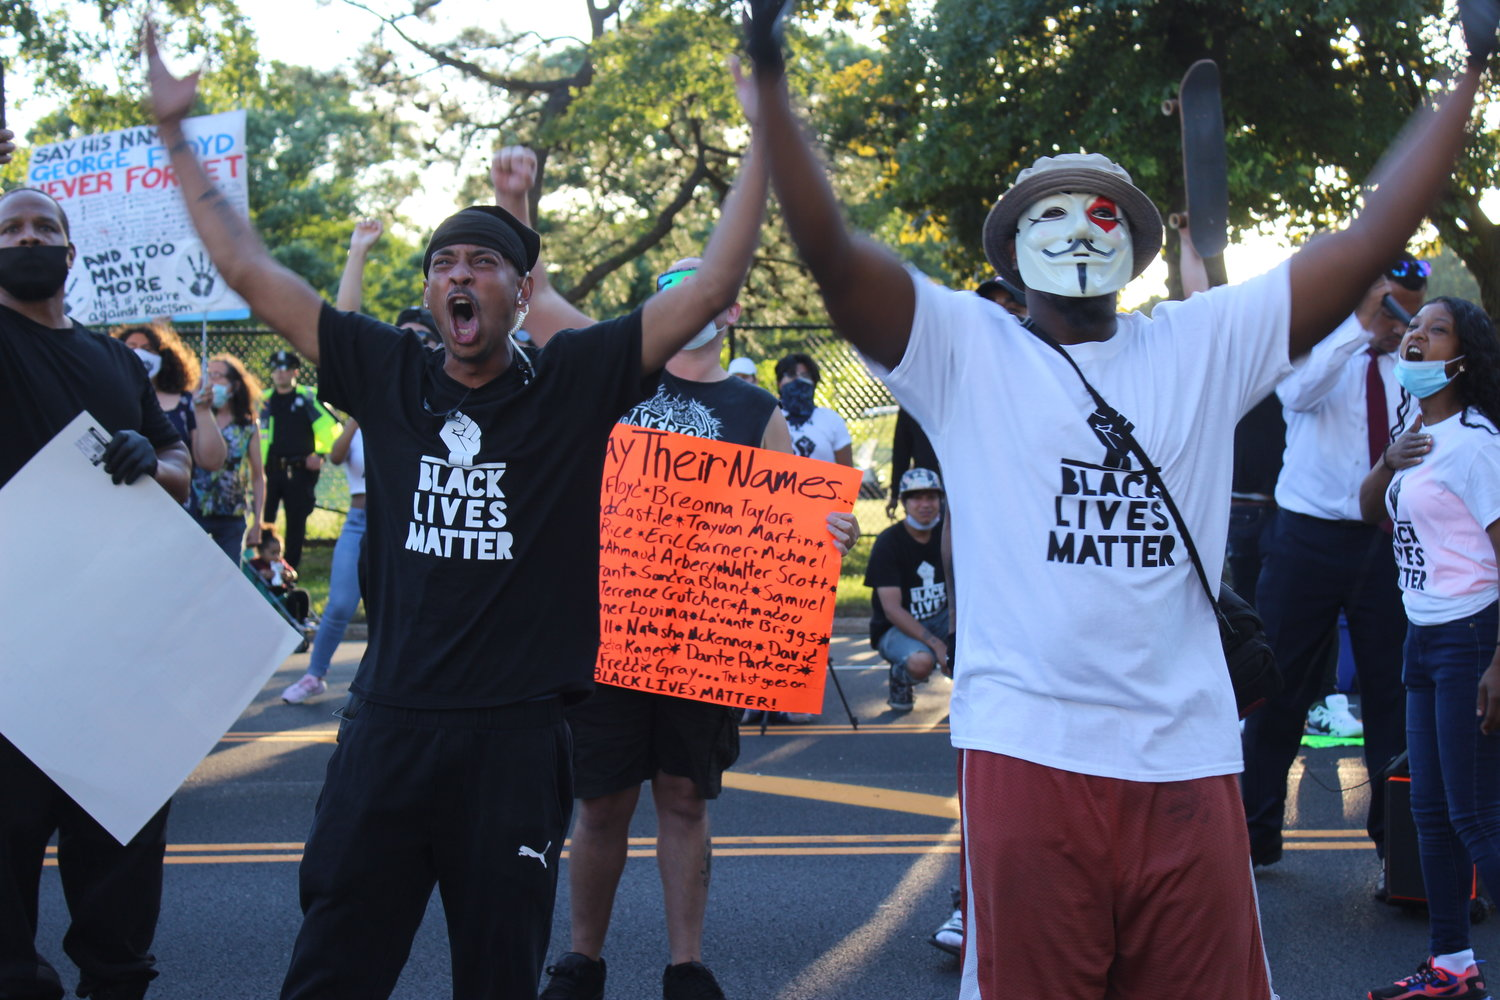 This protest, on June 16 in East Meadow, was one of many the Tuosto brothers have organized across Nassau County.